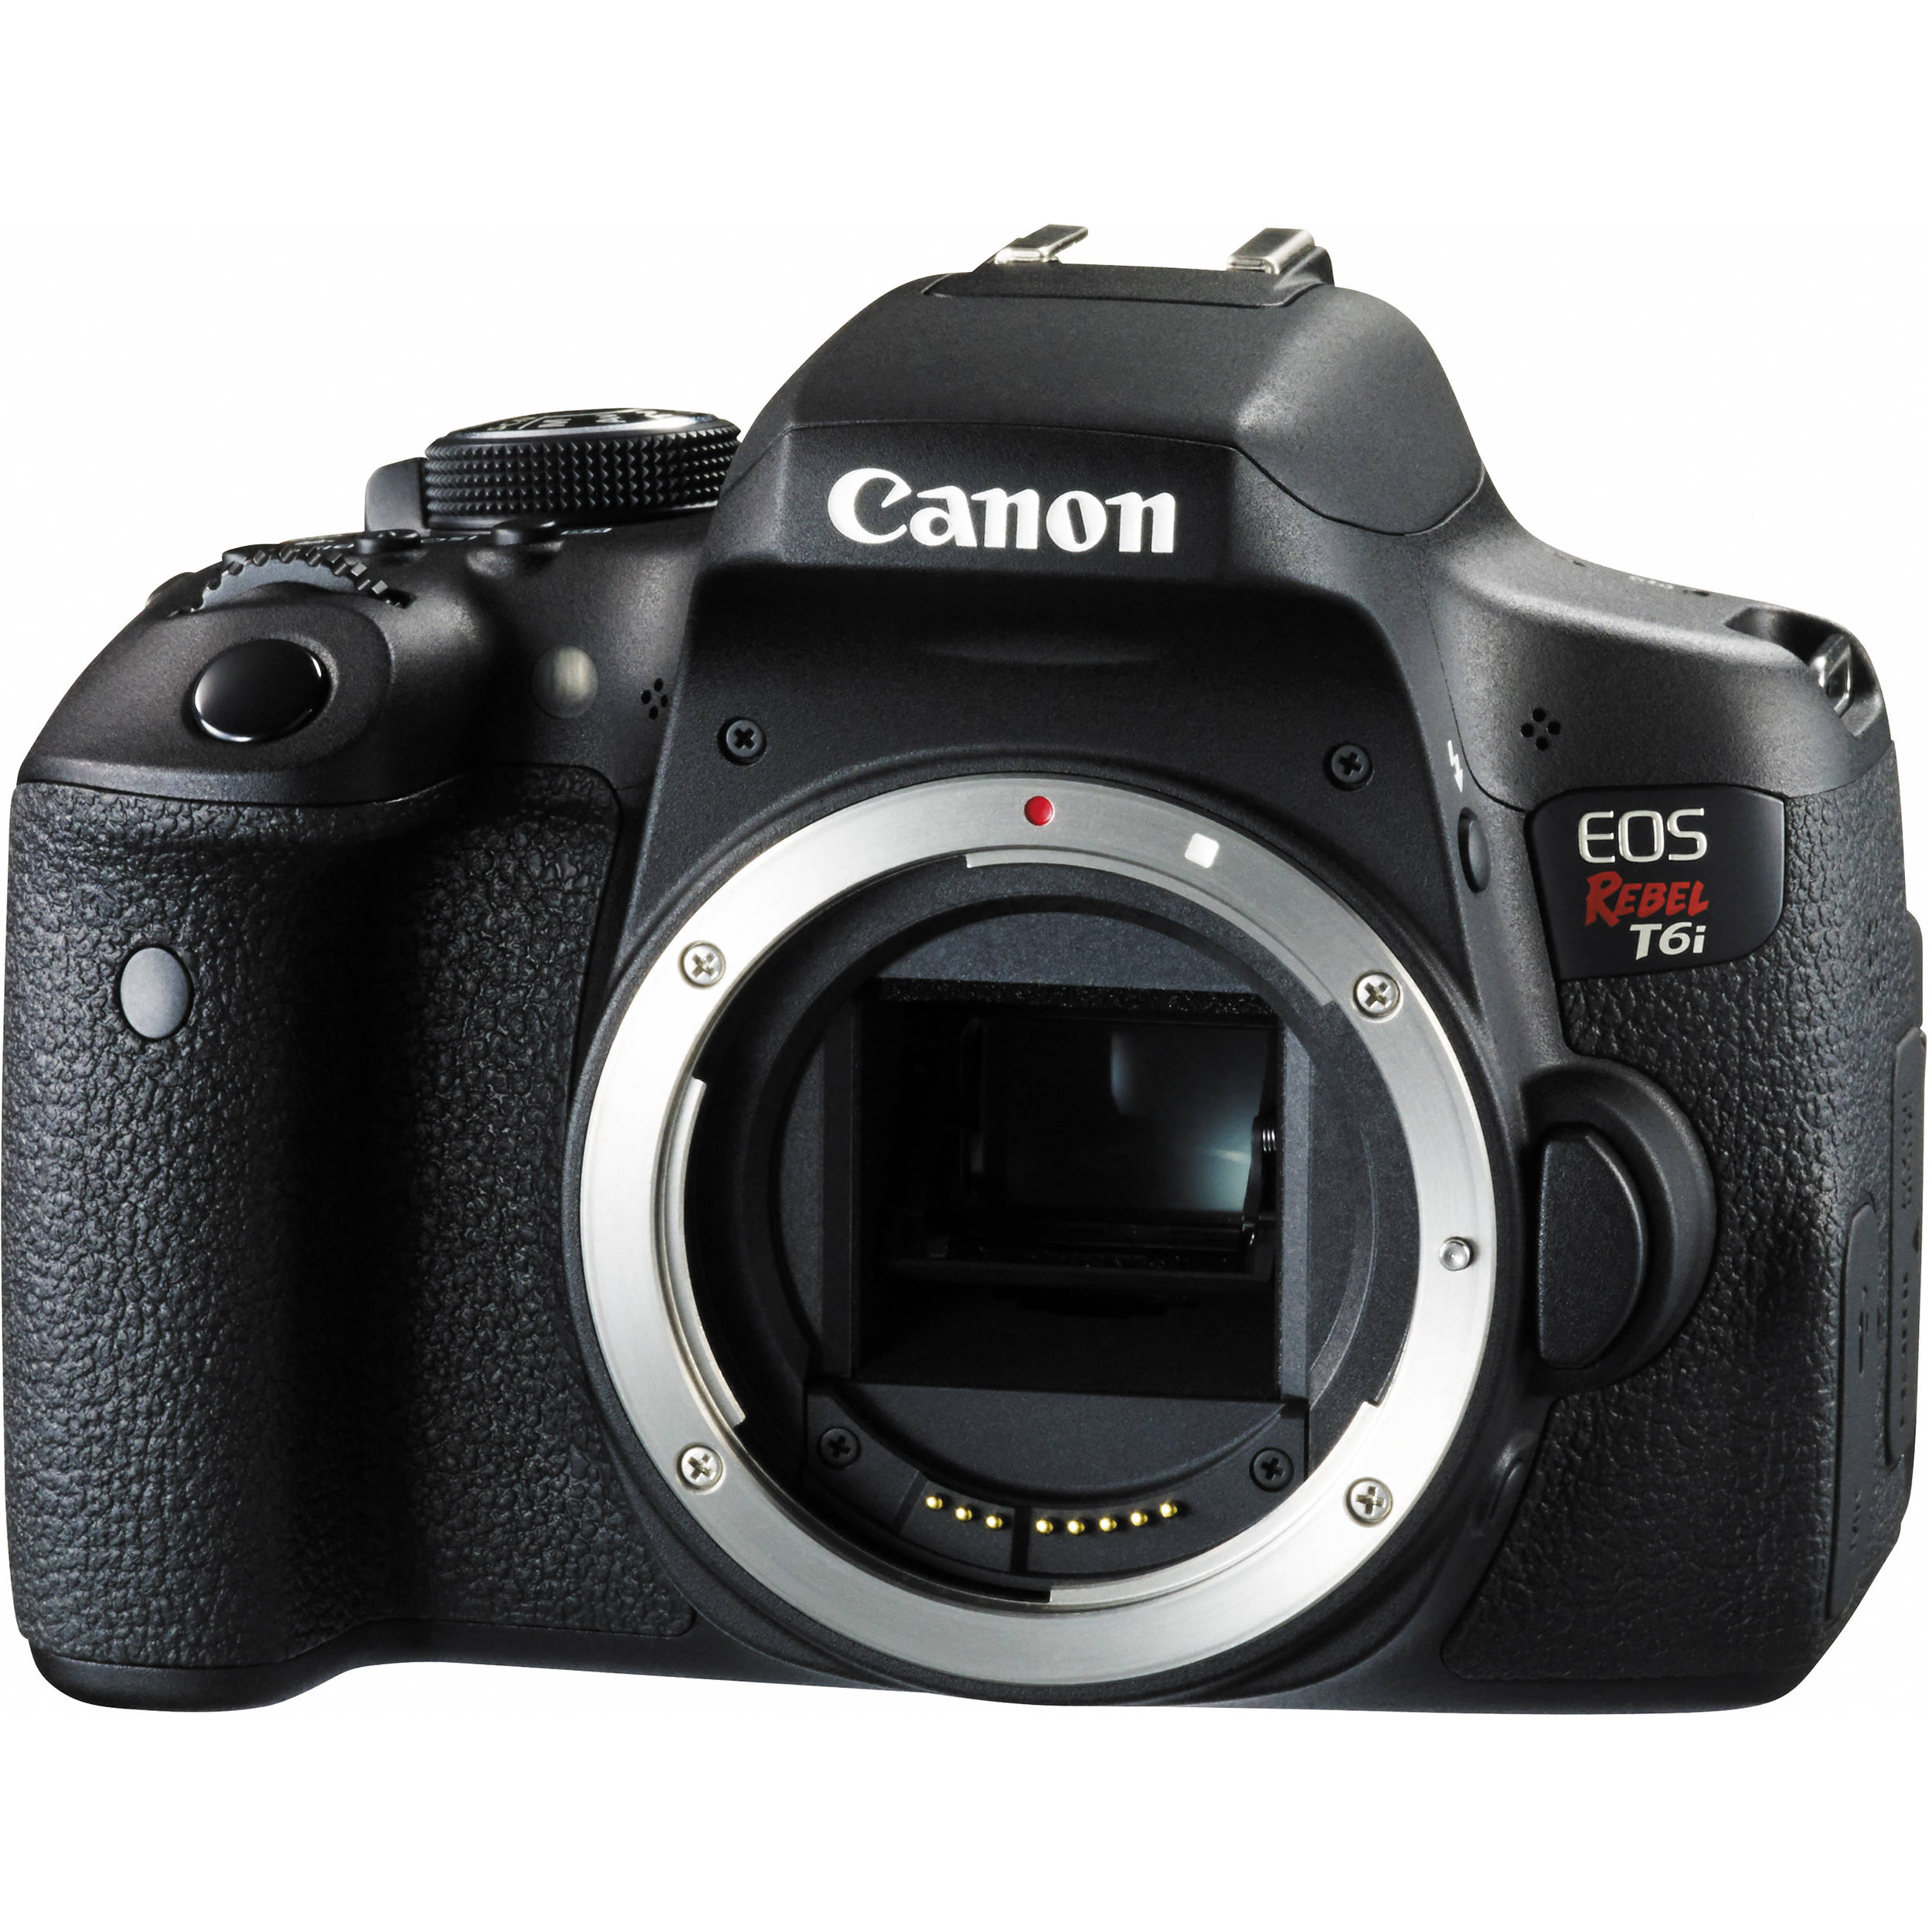 Camera Semi Dslr Cameras canon eos rebel t6i dslr camera body only 0591c001 bh photo only